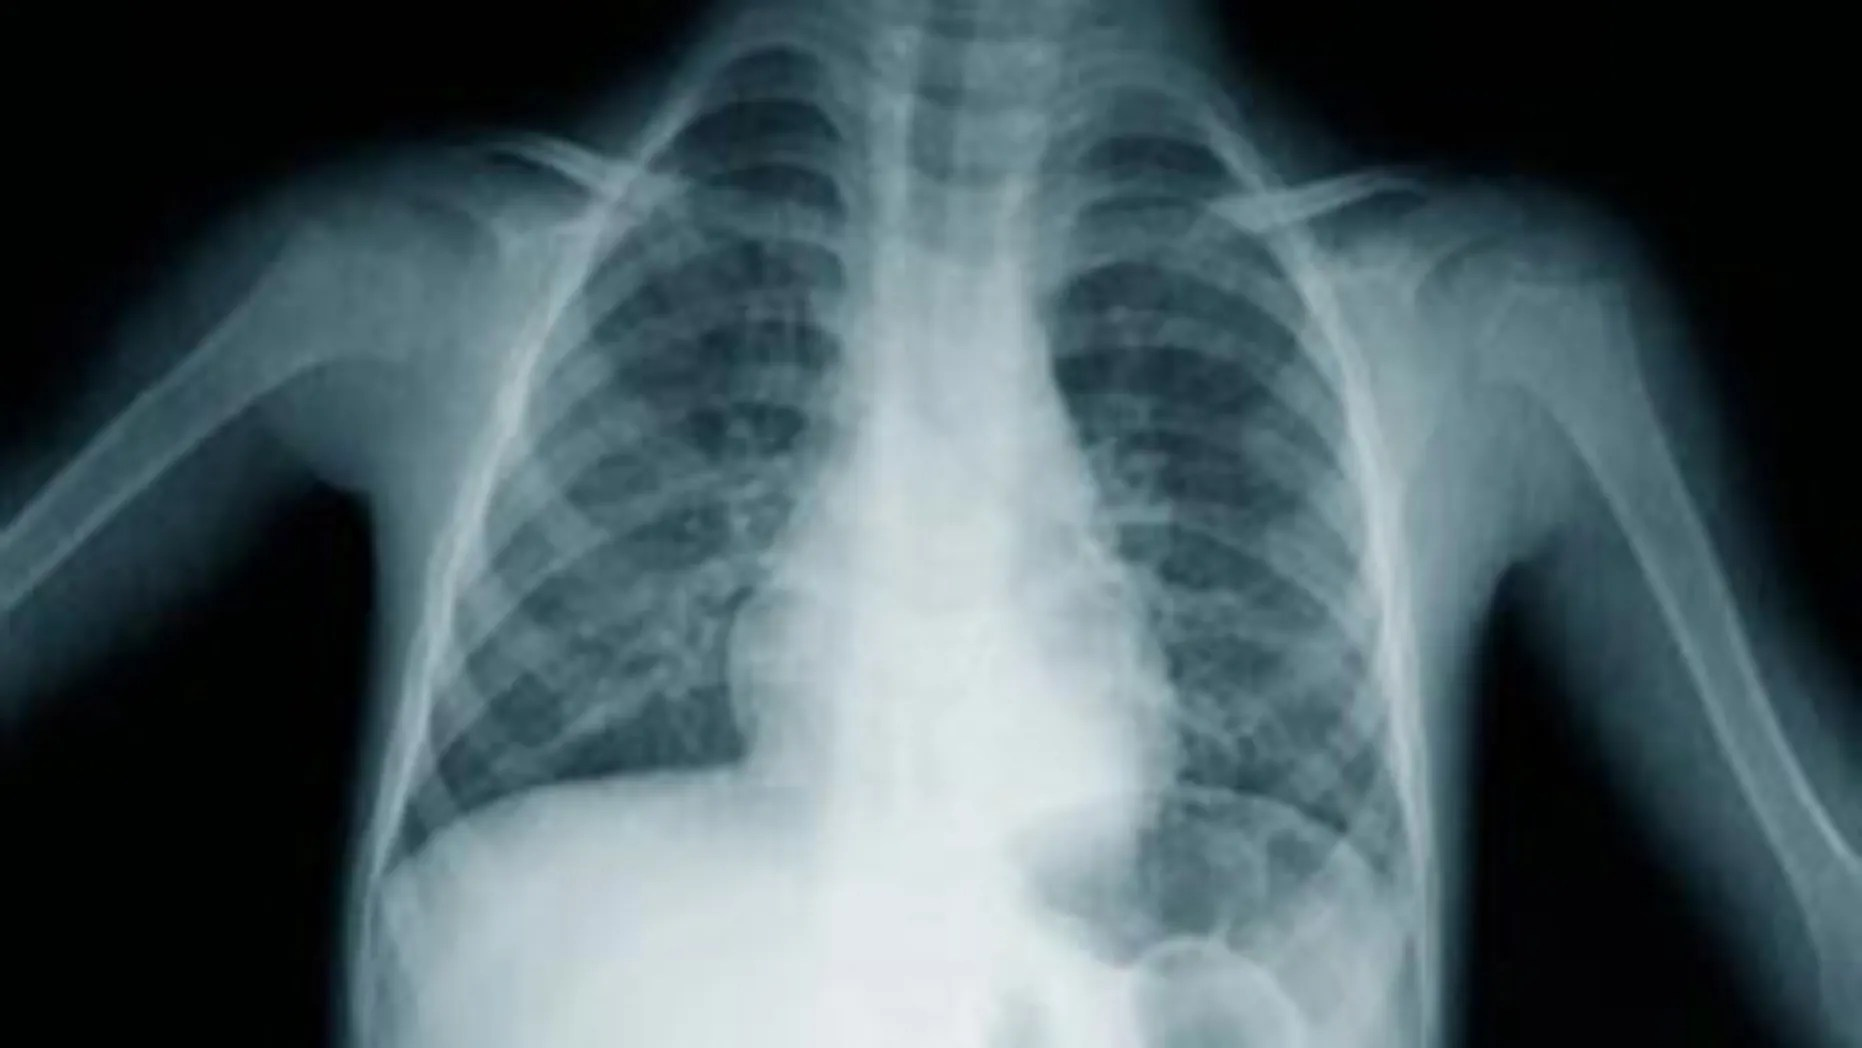 X-Ray Lung Cancer Screening Does Not Prevent Deaths | Fox News